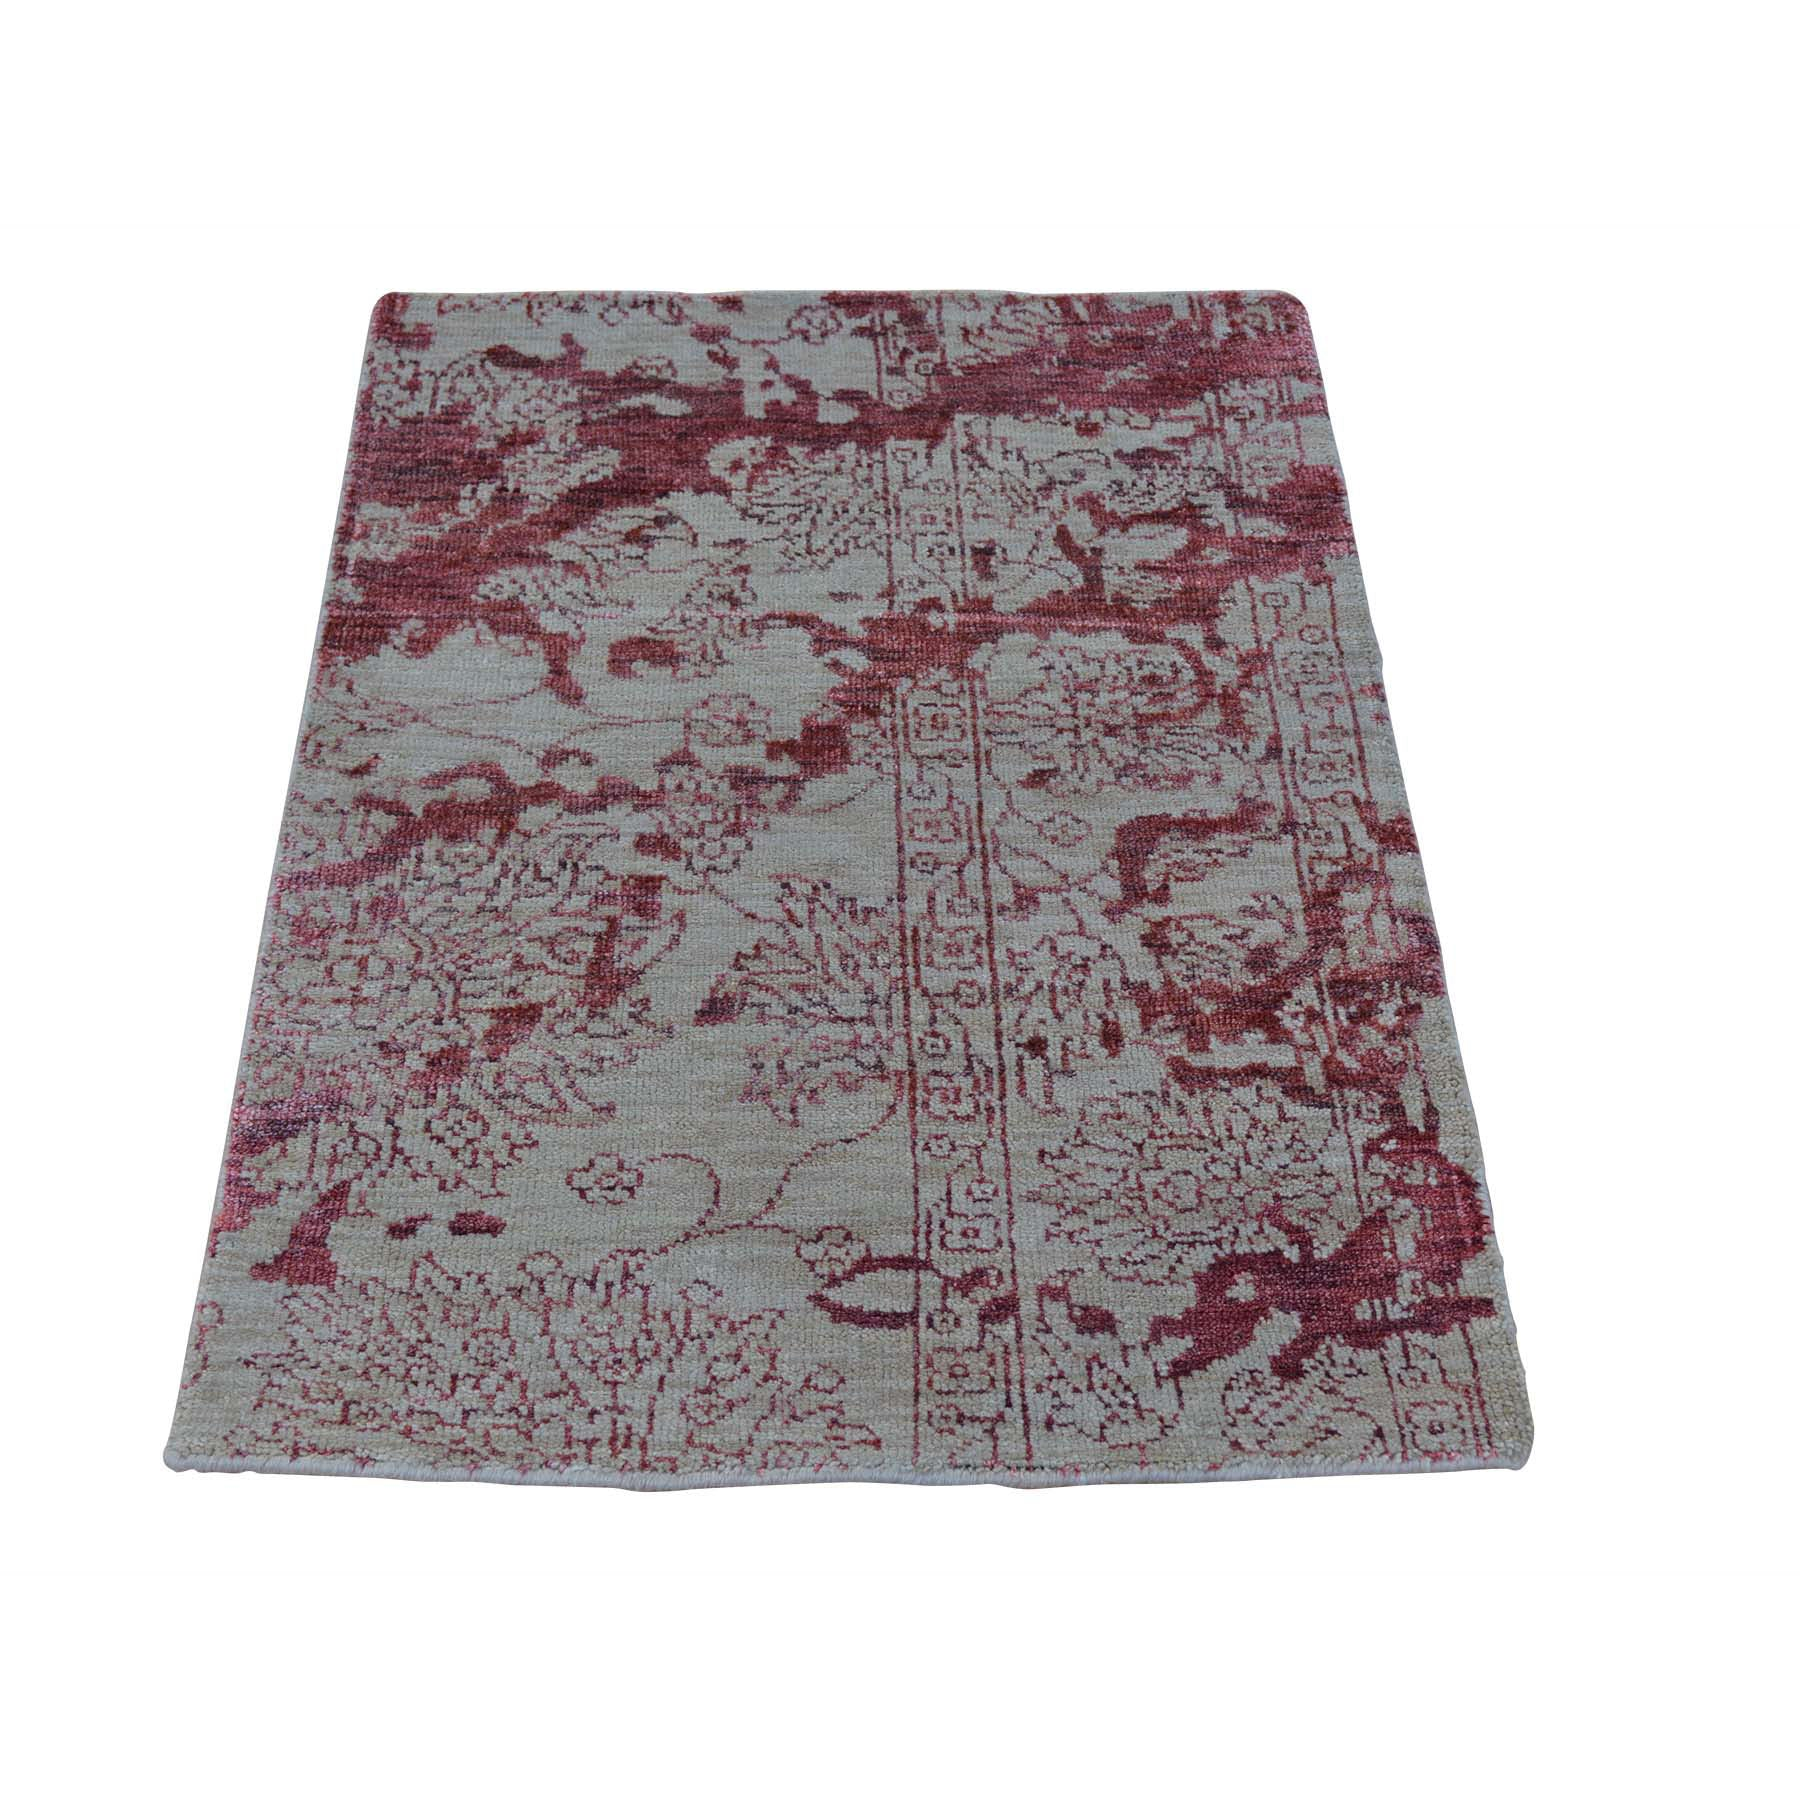 "Handmade Transitional Rectangle Rug > Design# SH23174 > Size: 2'-0"" x 3'-0"" [ONLINE ONLY]"